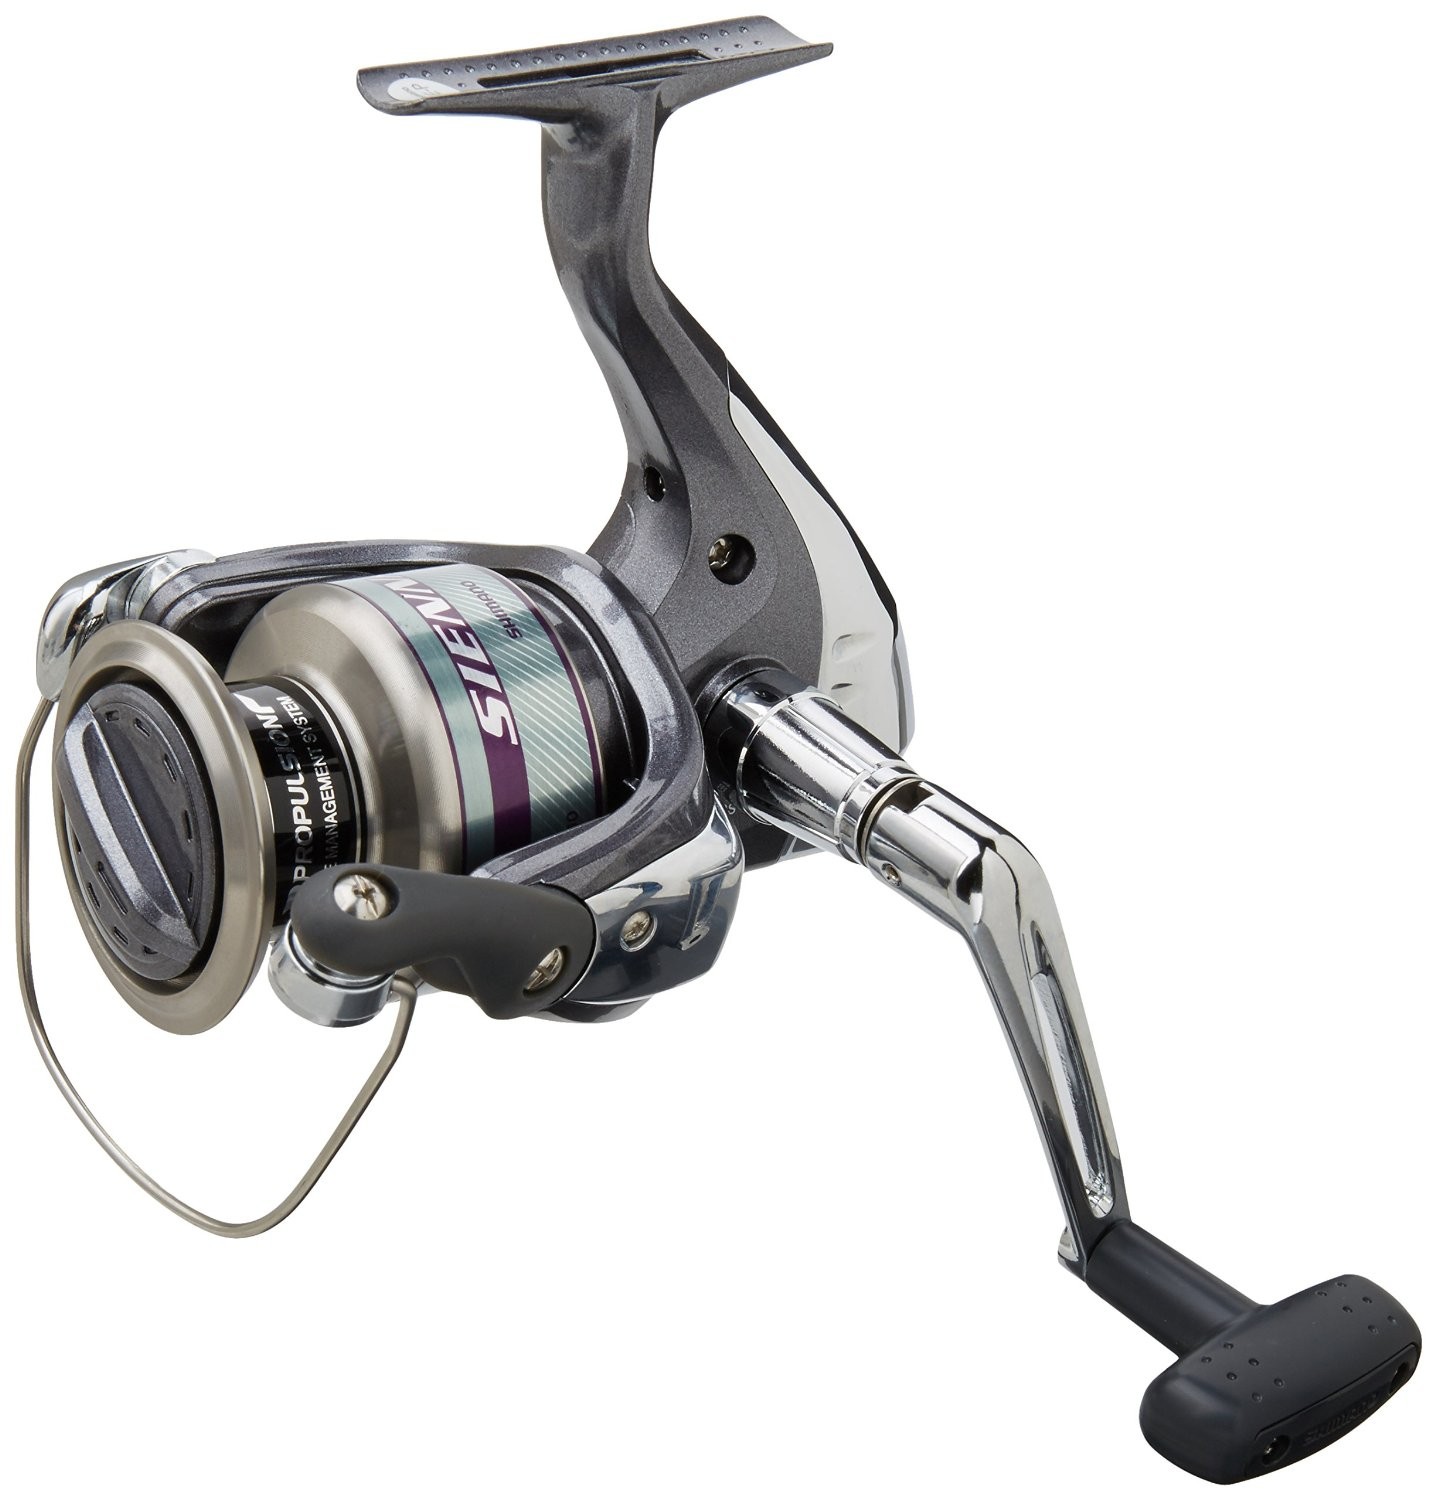 Best Shimano Ultralite Spinning Reel